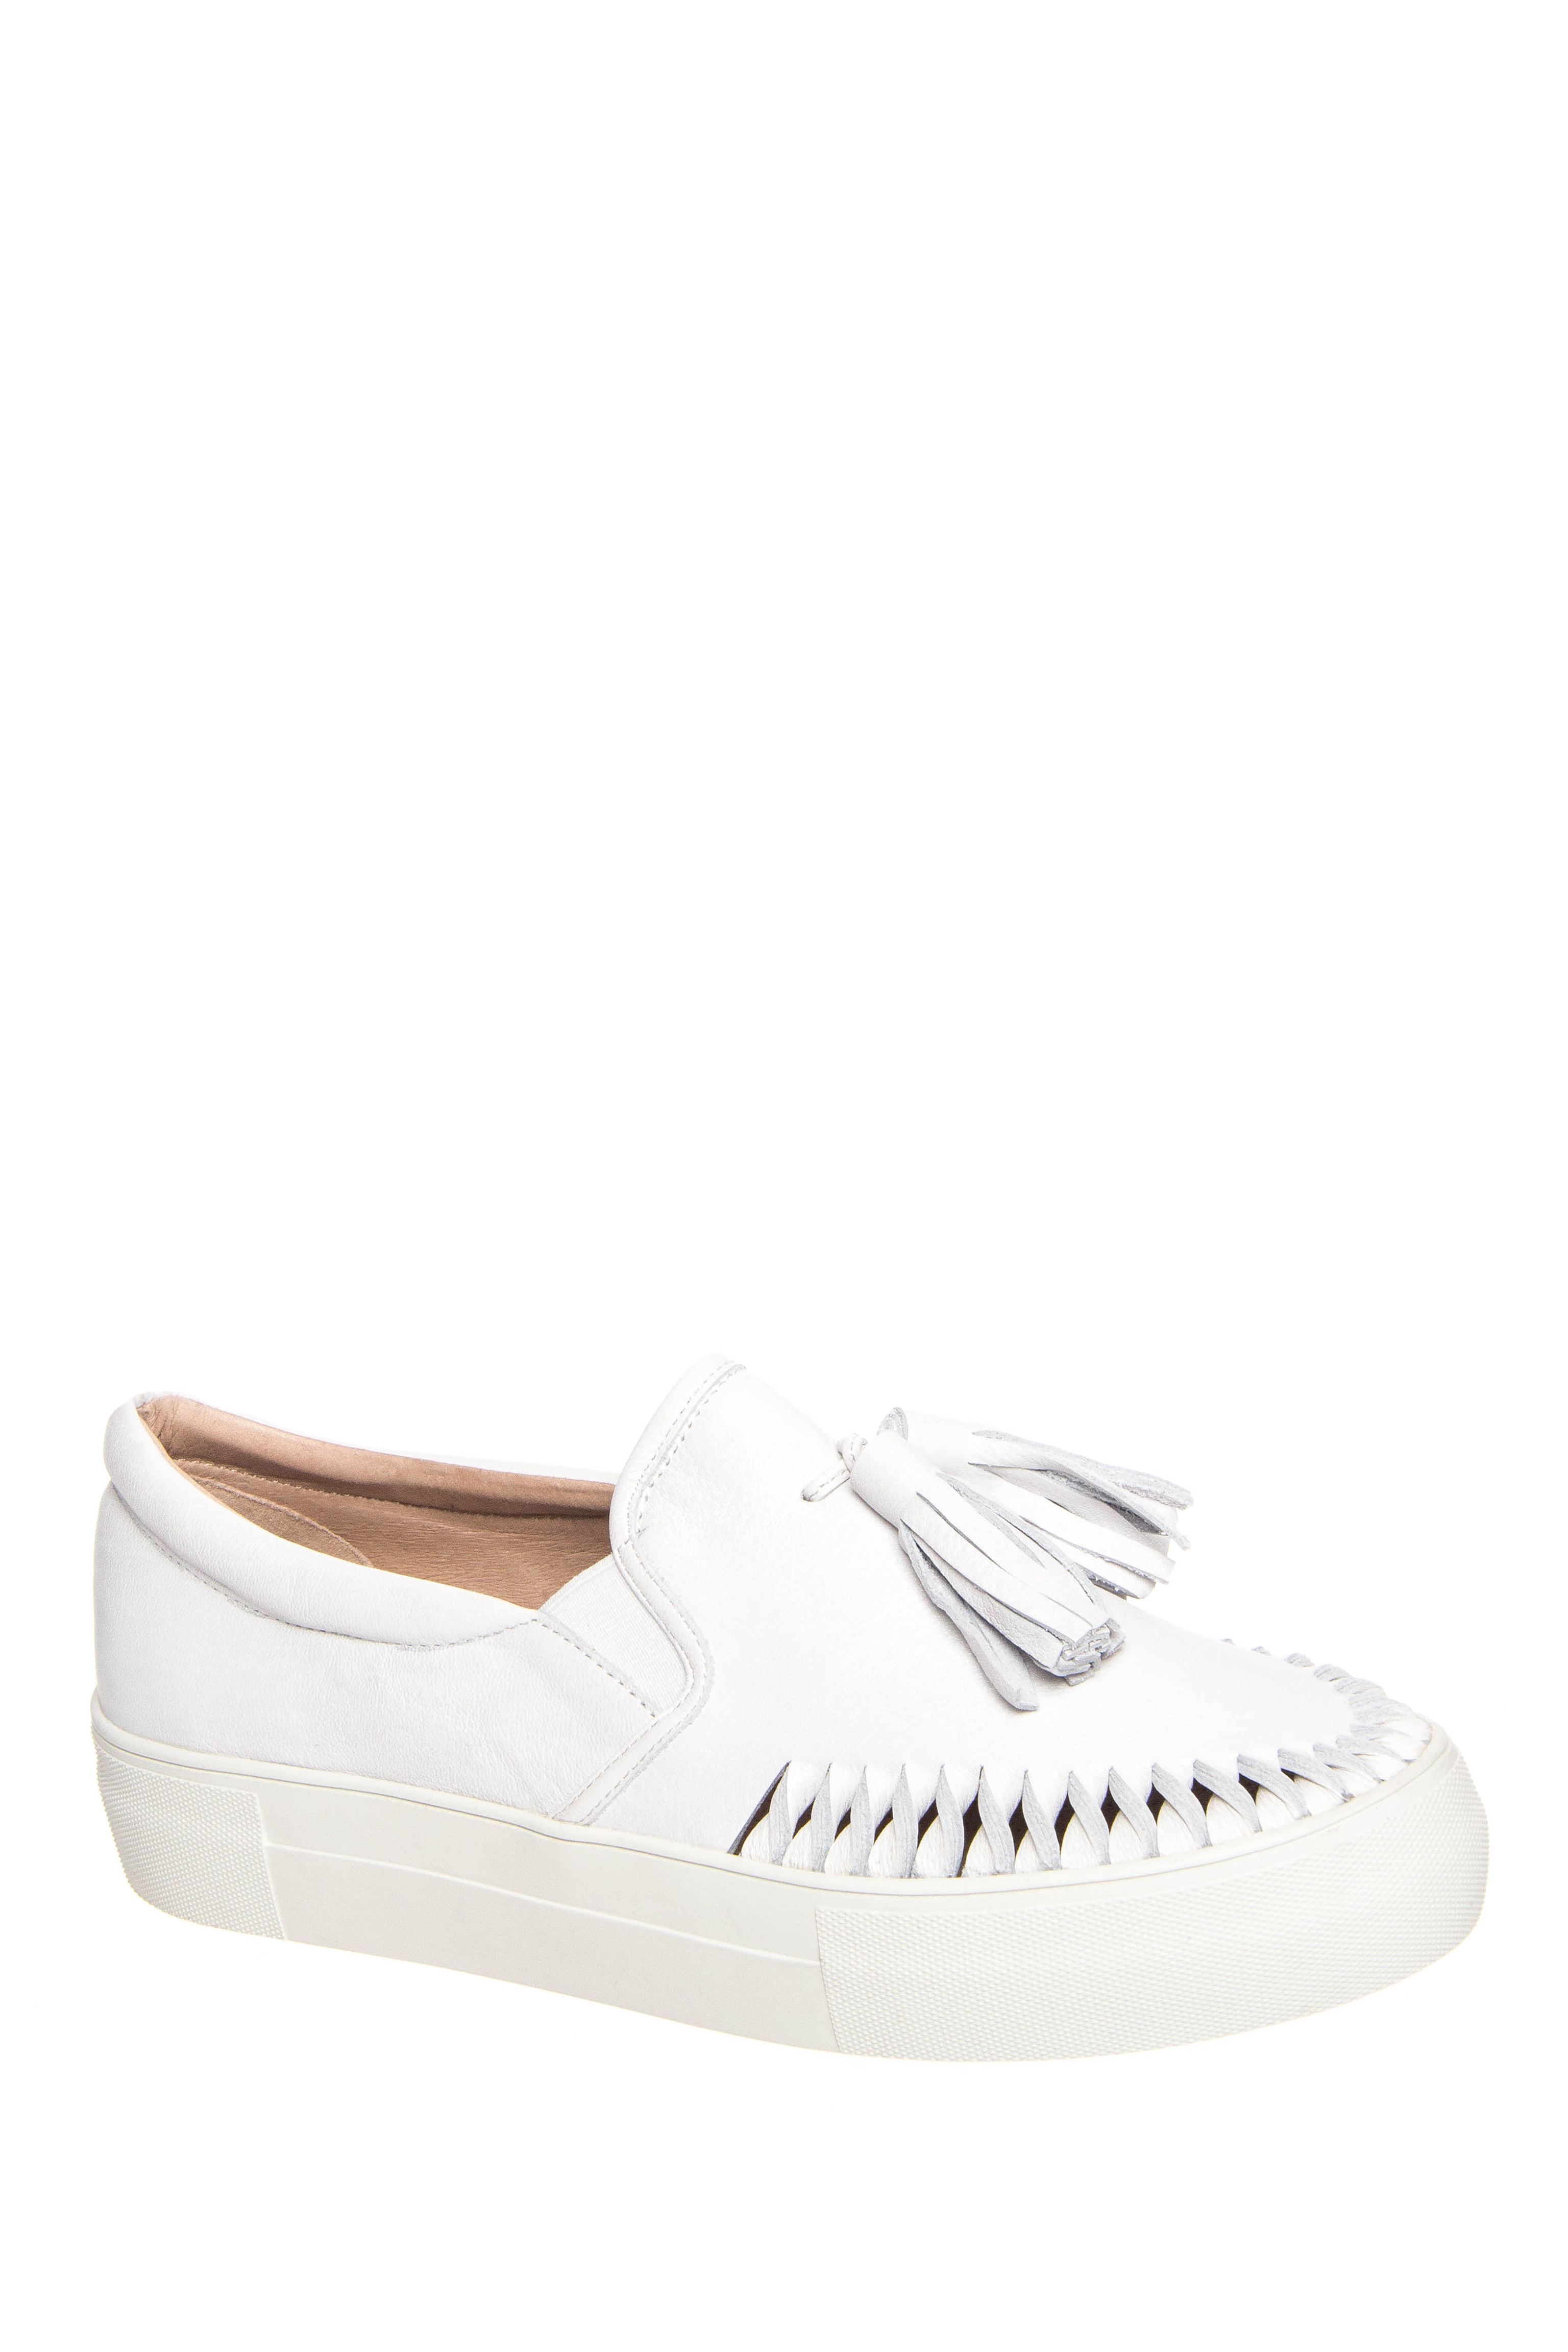 J/SLIDES Aztec Slip On Platform Sneakers - White